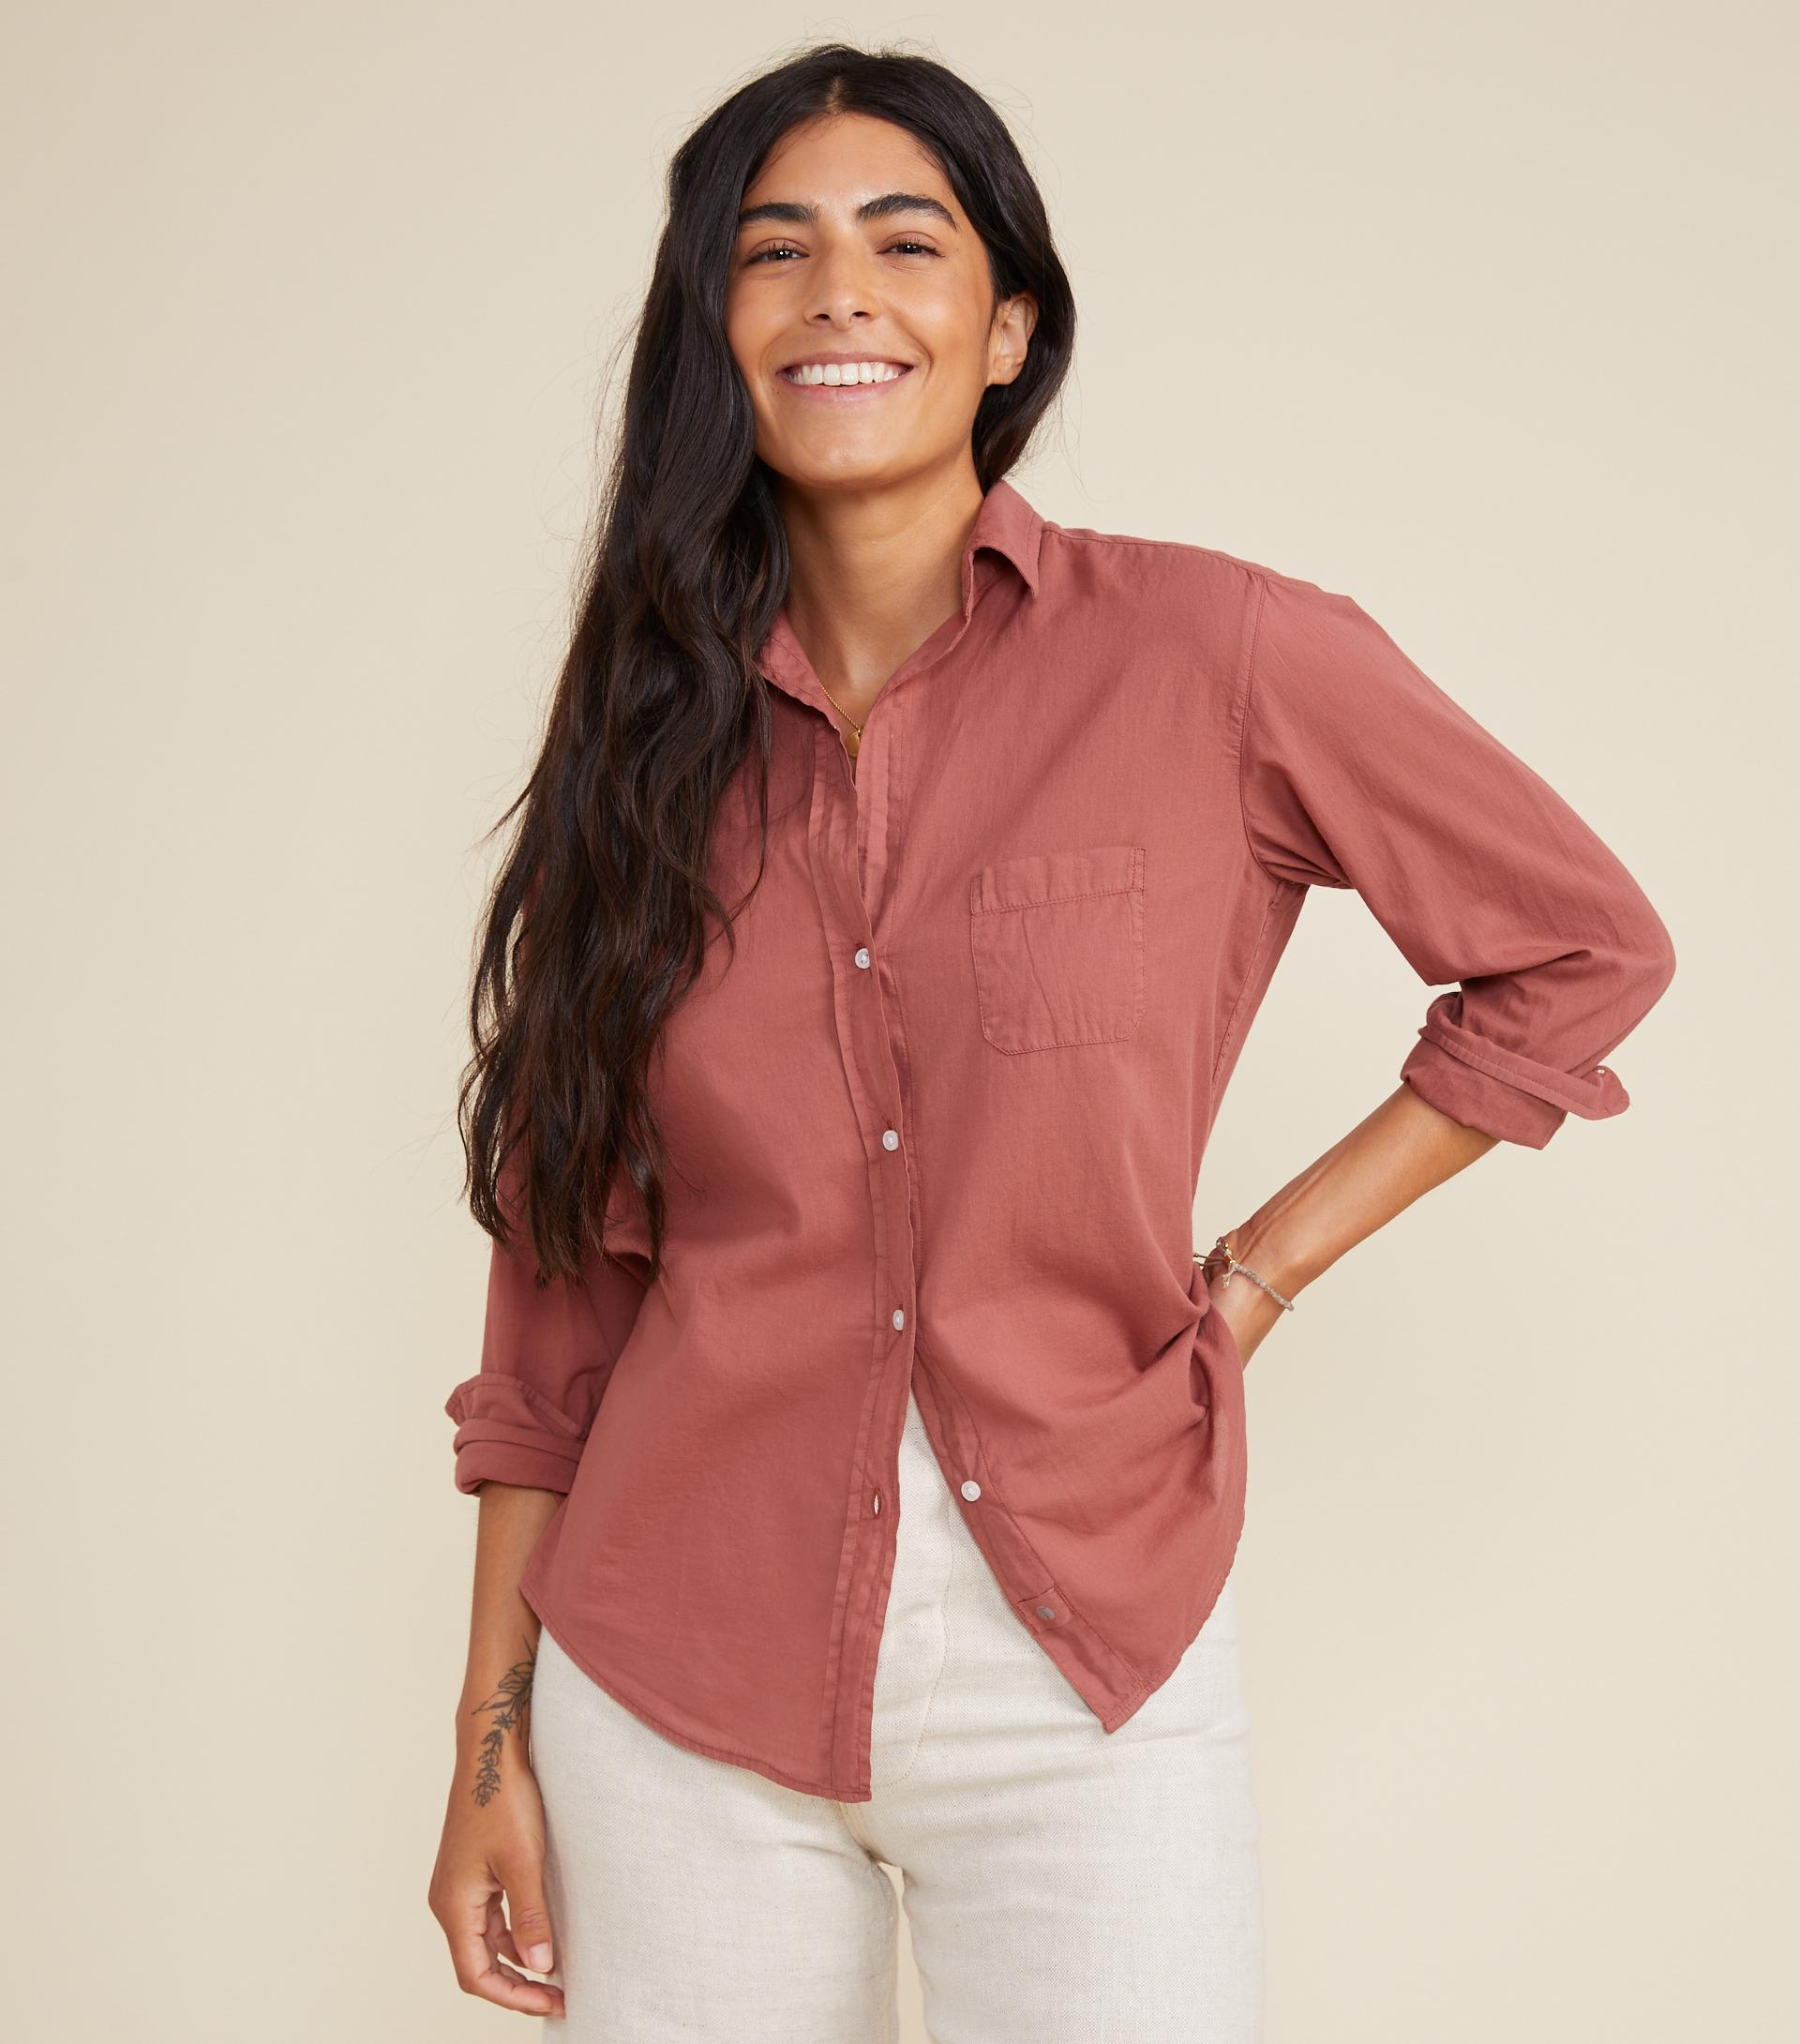 The Hero Button-Up Shirt Rosewood, Tissue Cotton